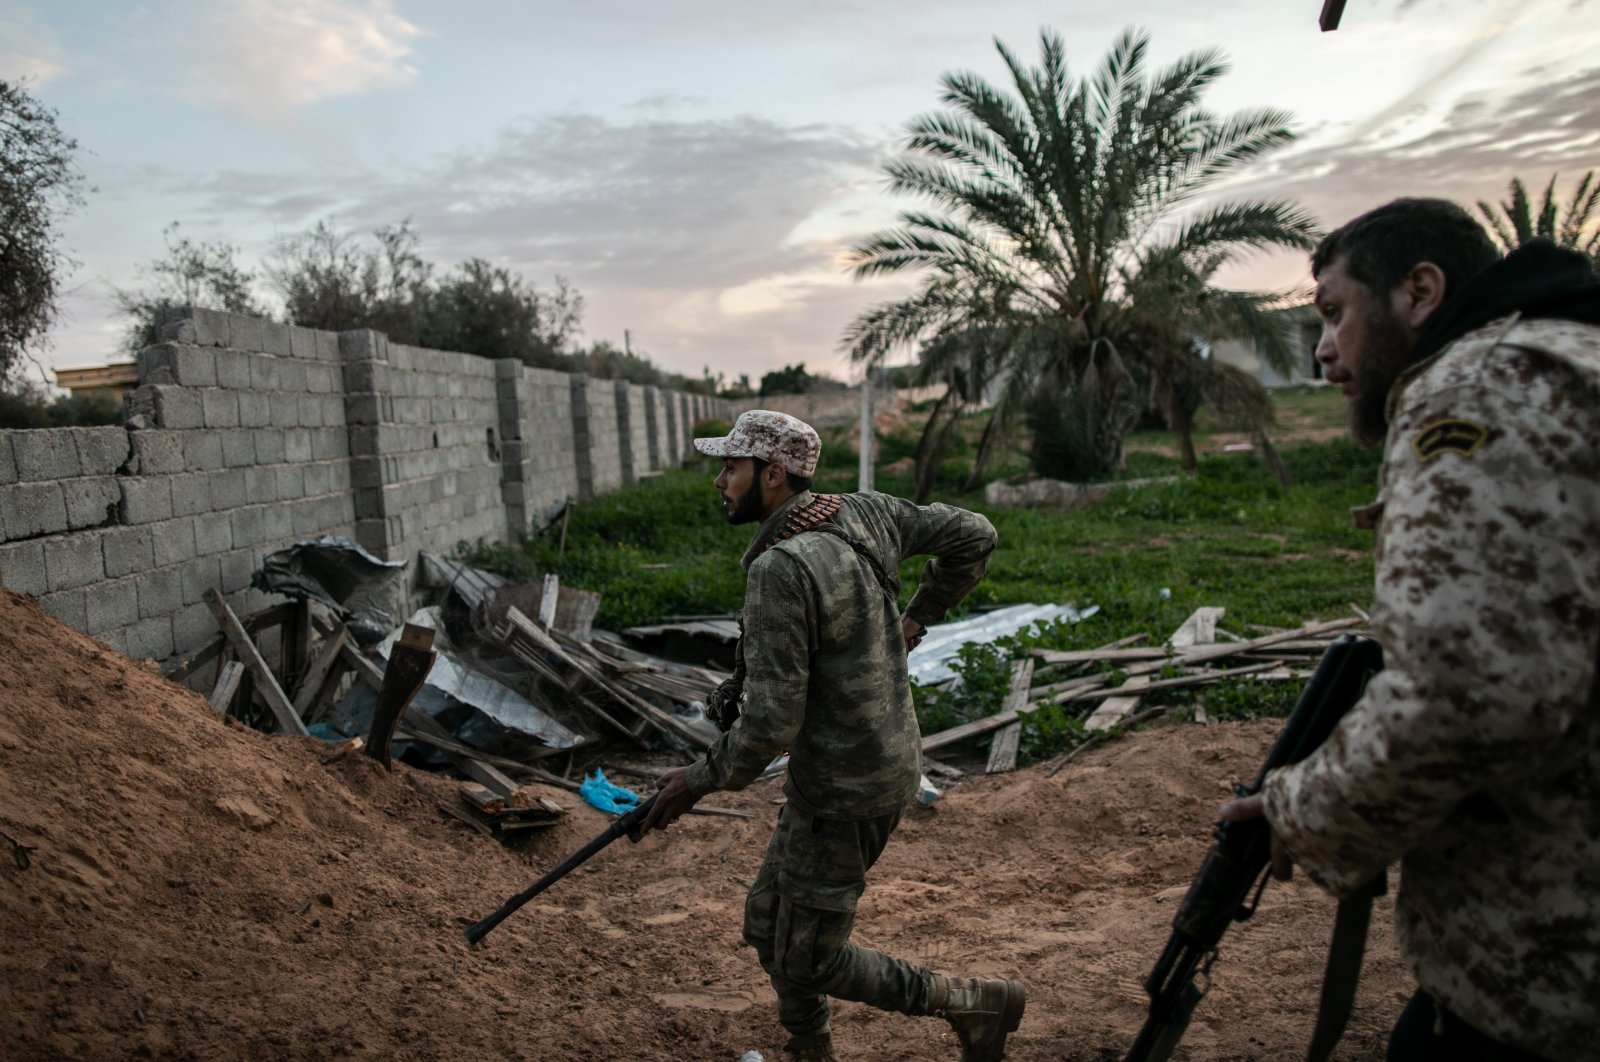 Fighters of the U.N.-backed National Agreement Government (GNA) during clashes with the eastern-based army on the Sawani front line in Tripoli, Libya, 12 Feb. 2020. (Reuters File Photo)